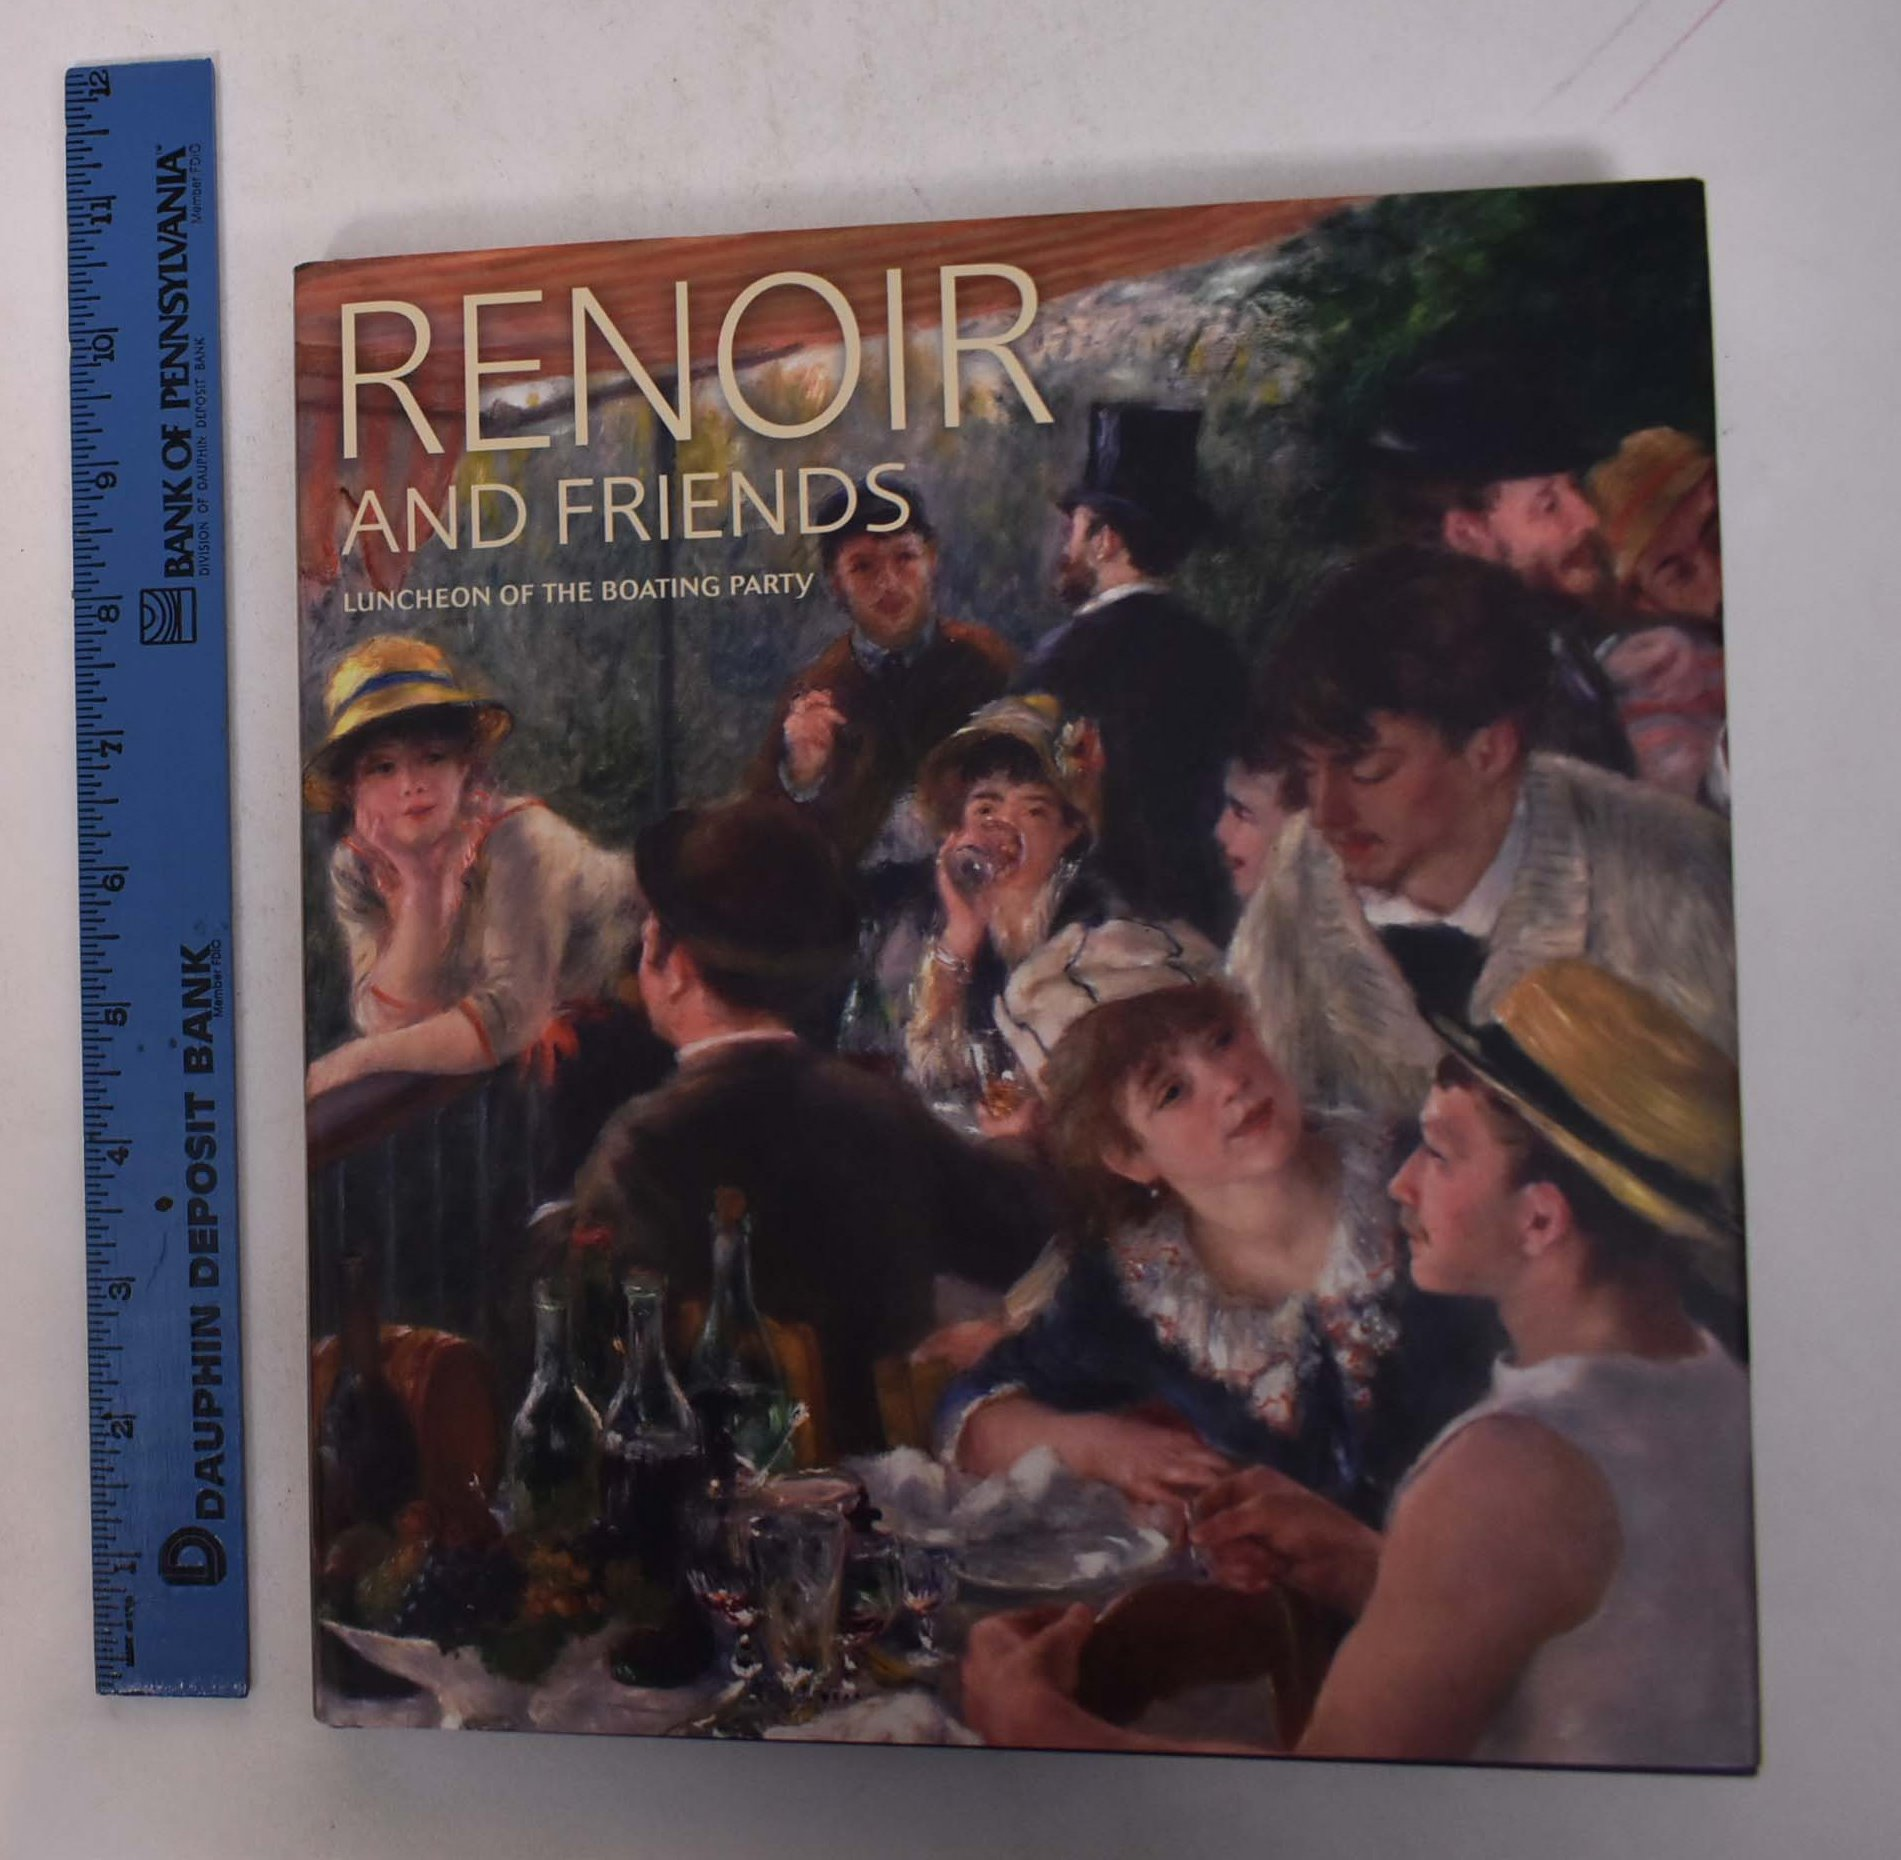 RATHBONE, ELIZA E., MARY G. MORTON, SYLVIE PATRY, ET AL. - Renoir and Friends: Luncheon of the Boating Party